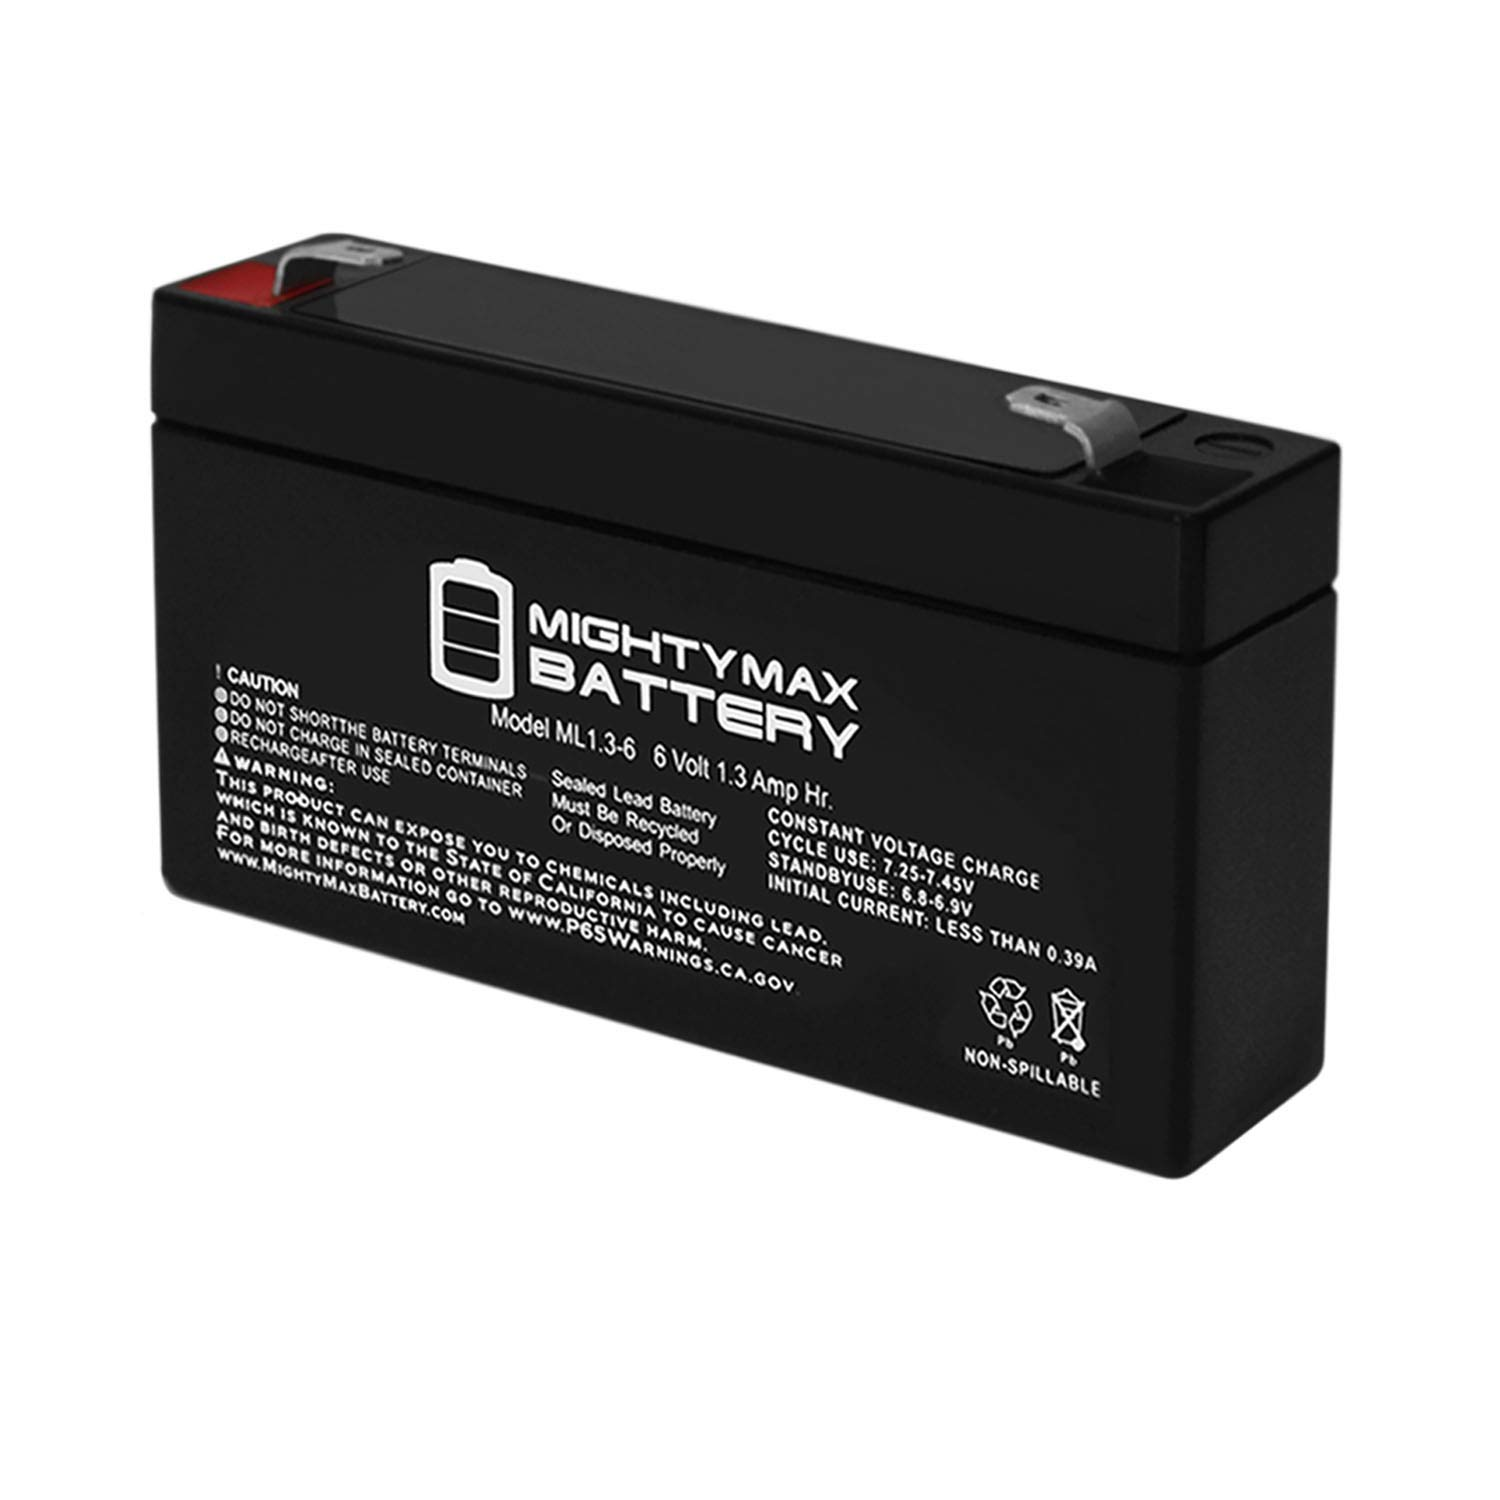 Mighty Max Battery 6V 1.3AH Network Security Systems IPSAI600 Alarm Battery Brand Product